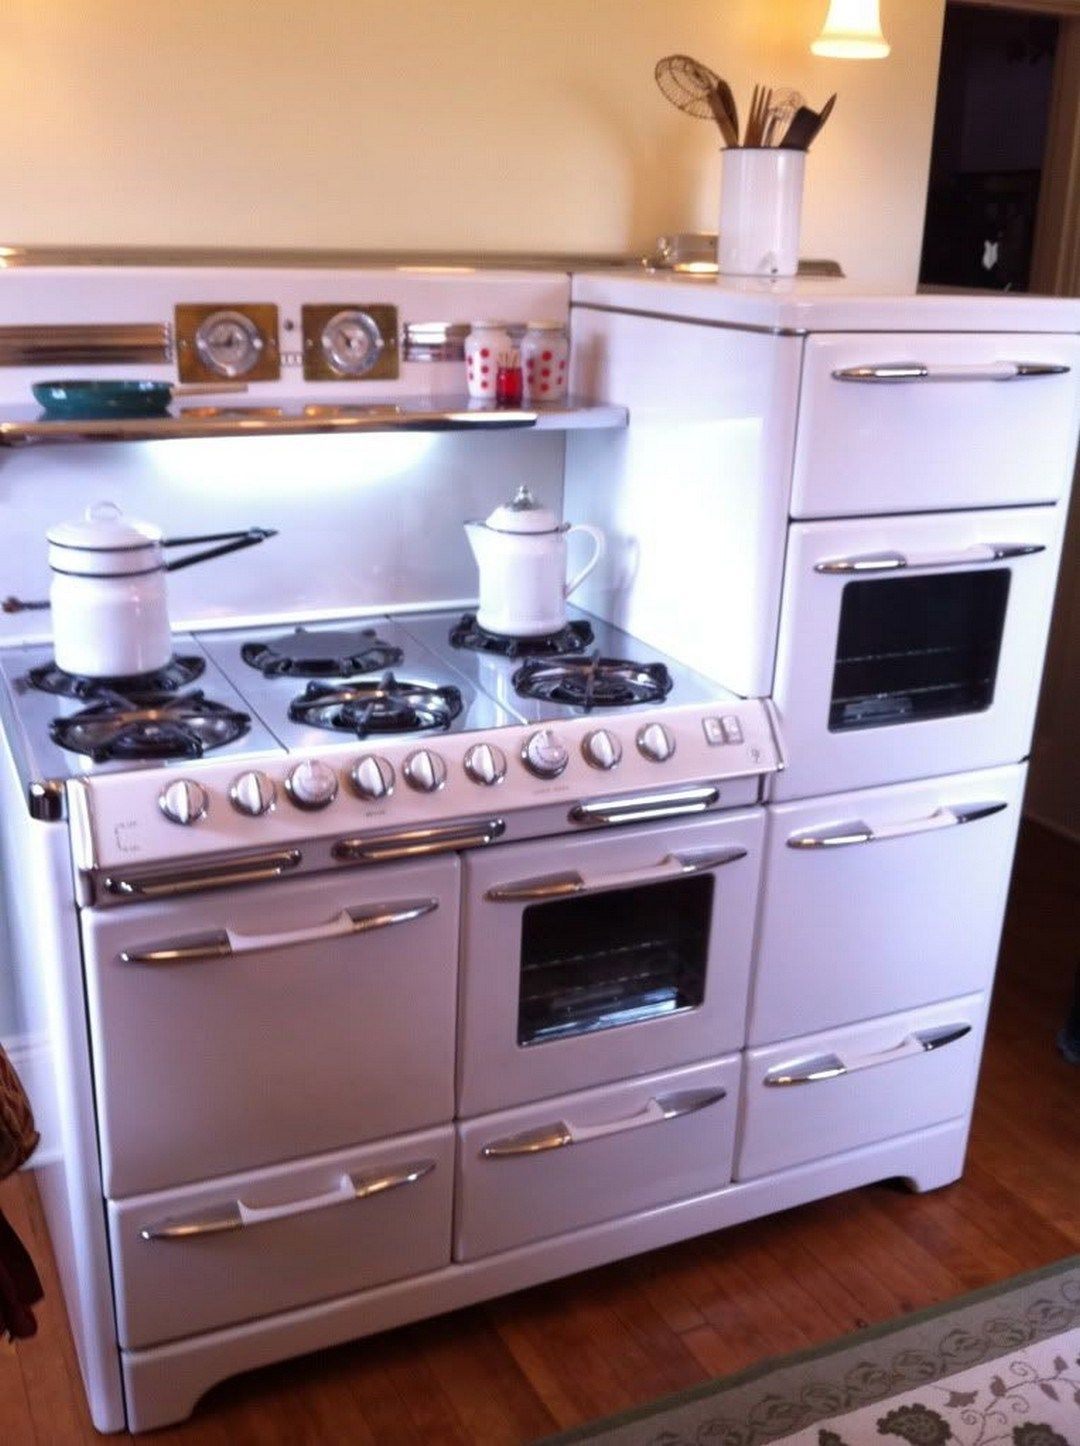 Vintage Style Kitchen Appliance Product And Design (9